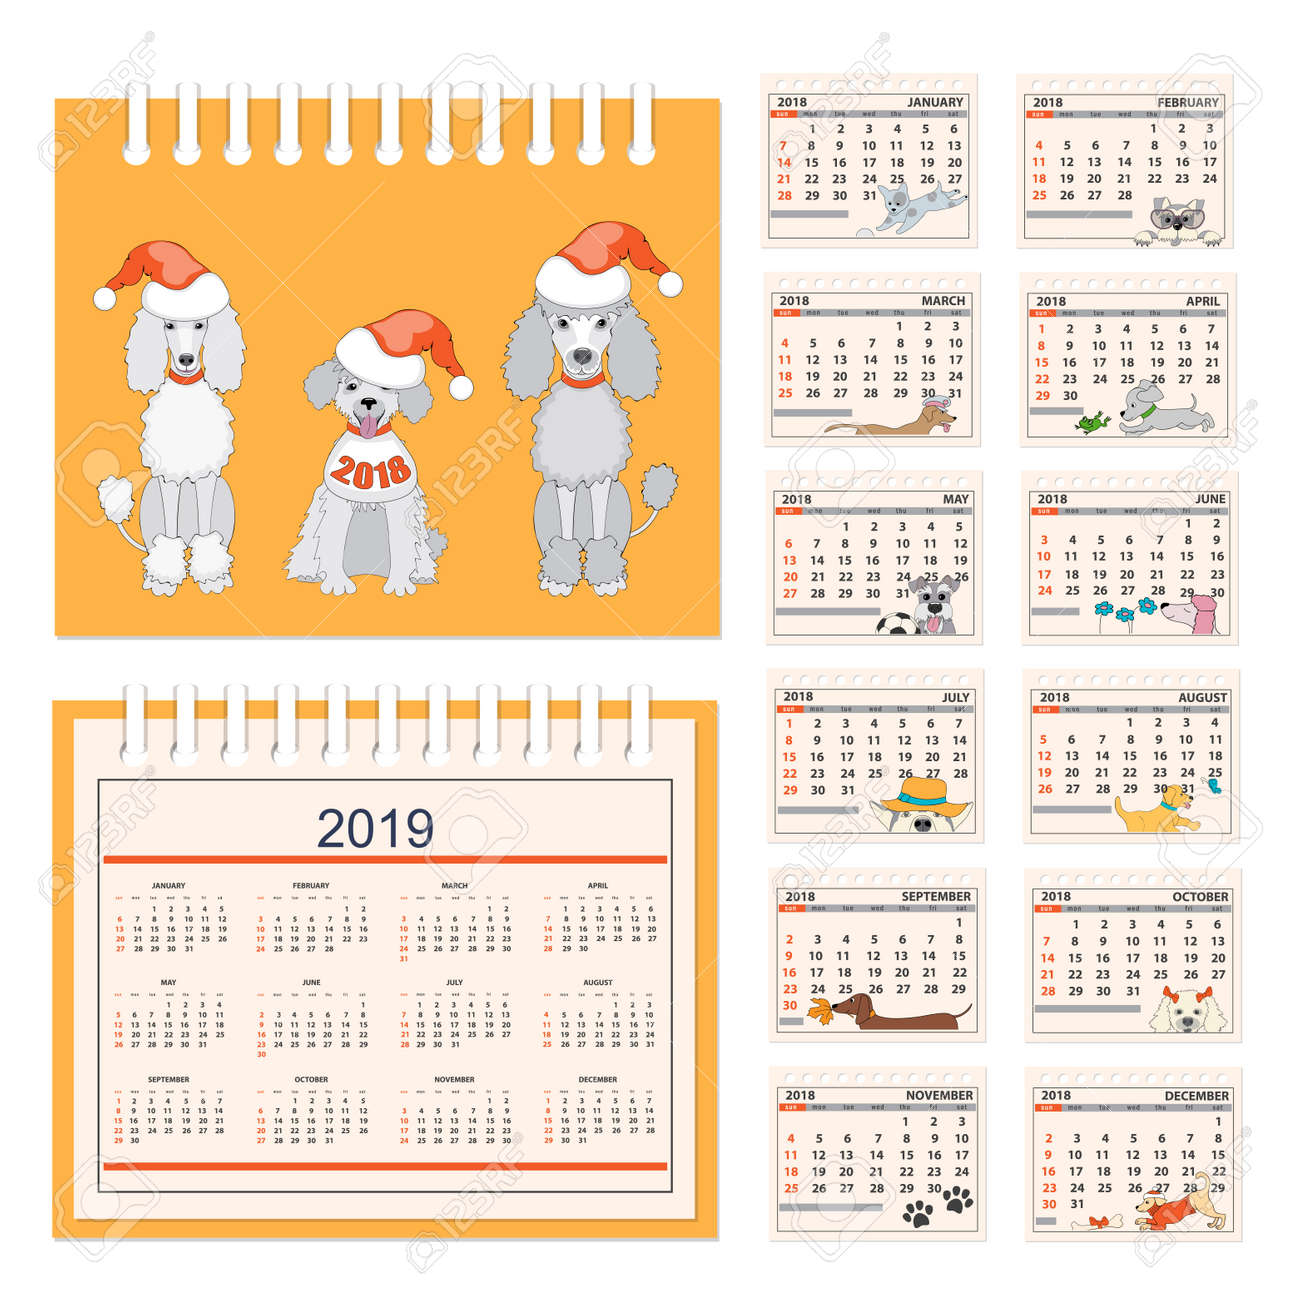 Los Mese Del Año En Ingles Business American Calendar For Desk On 2018 Year Set Of The